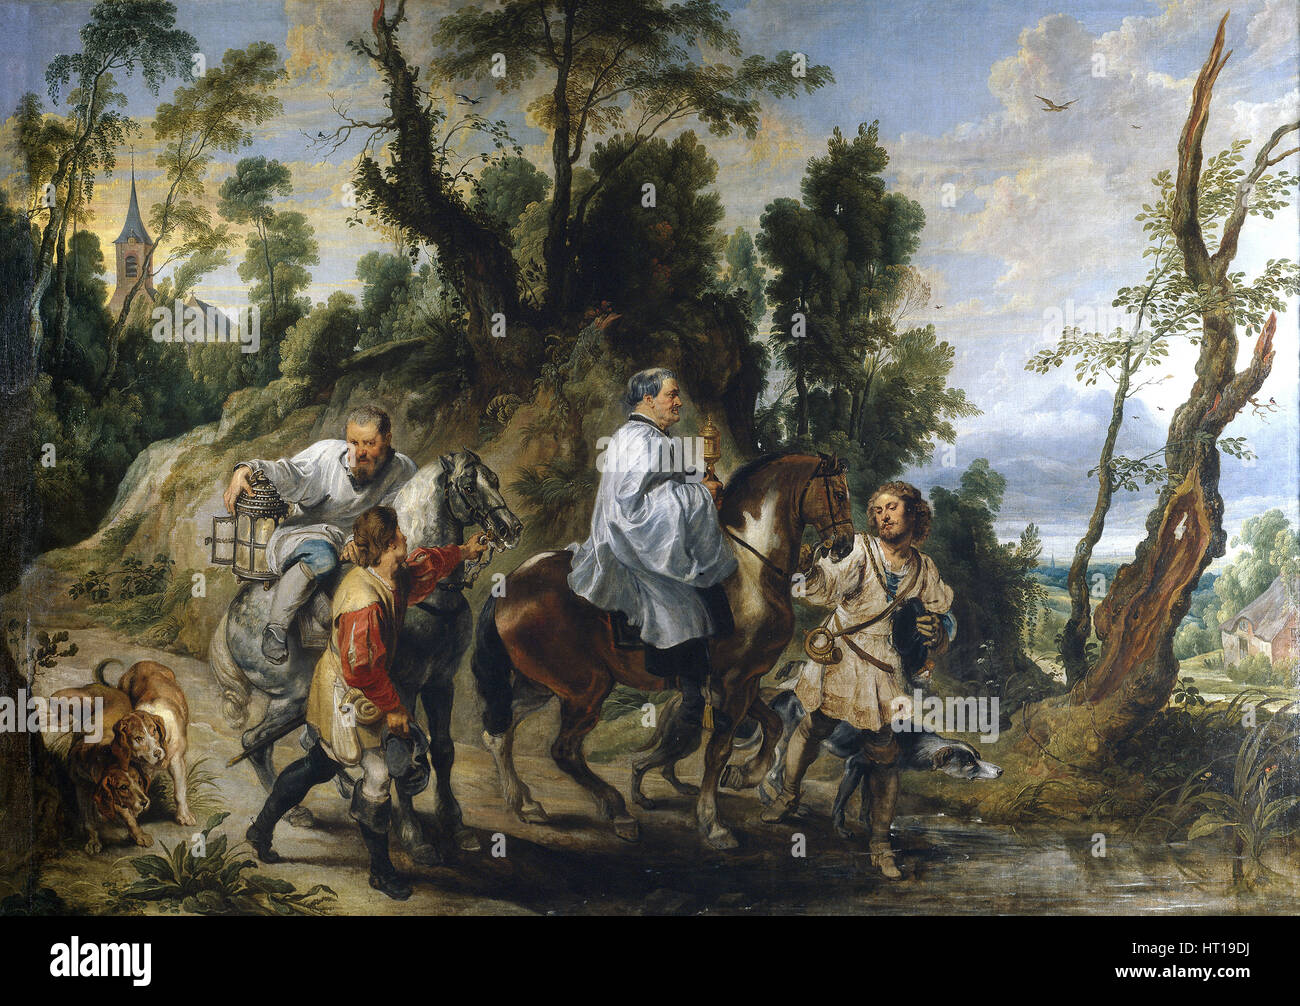 Rudolph of Habsburg and the Priest, ca 1625. Artist: Wildens, Jan (1586-1653) - Stock Image